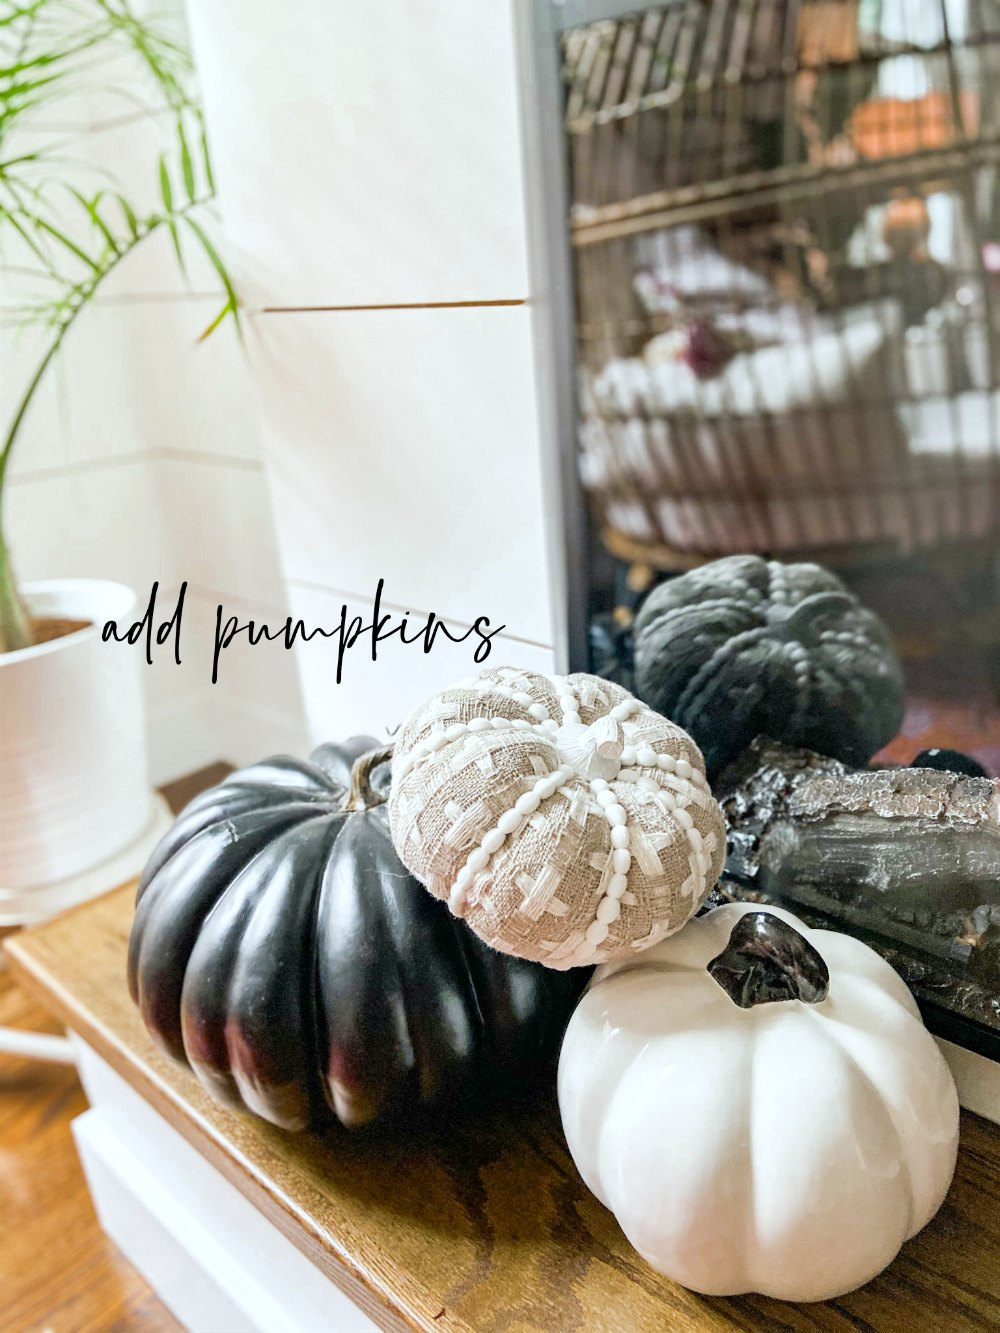 Easy Black and White Fall Mantel! Create a striking black and white mantel with pumpkins, DIY paper medallions and paper banner!